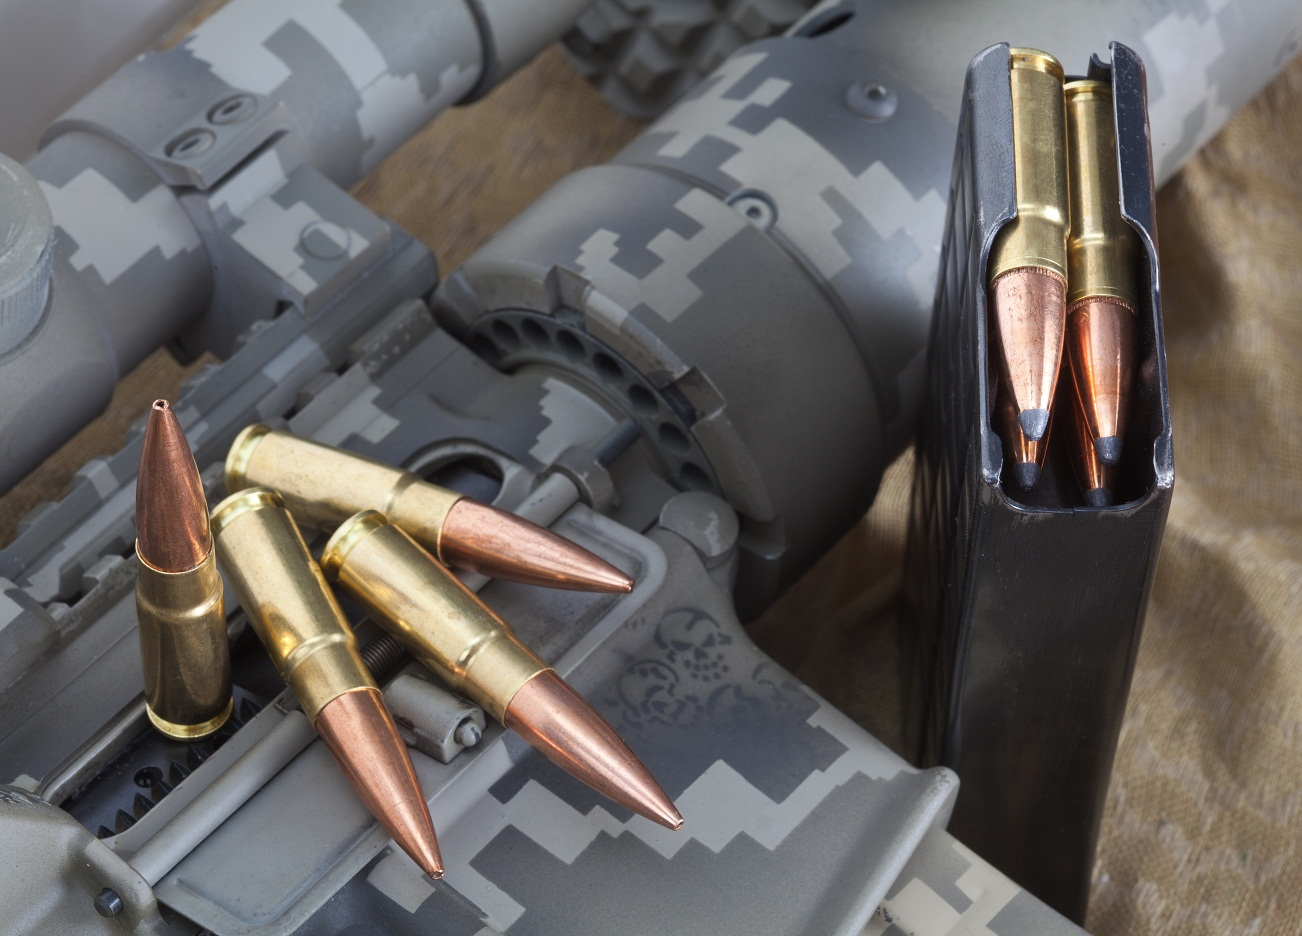 338 Spectre cartridges in a 6.8SPC magazine